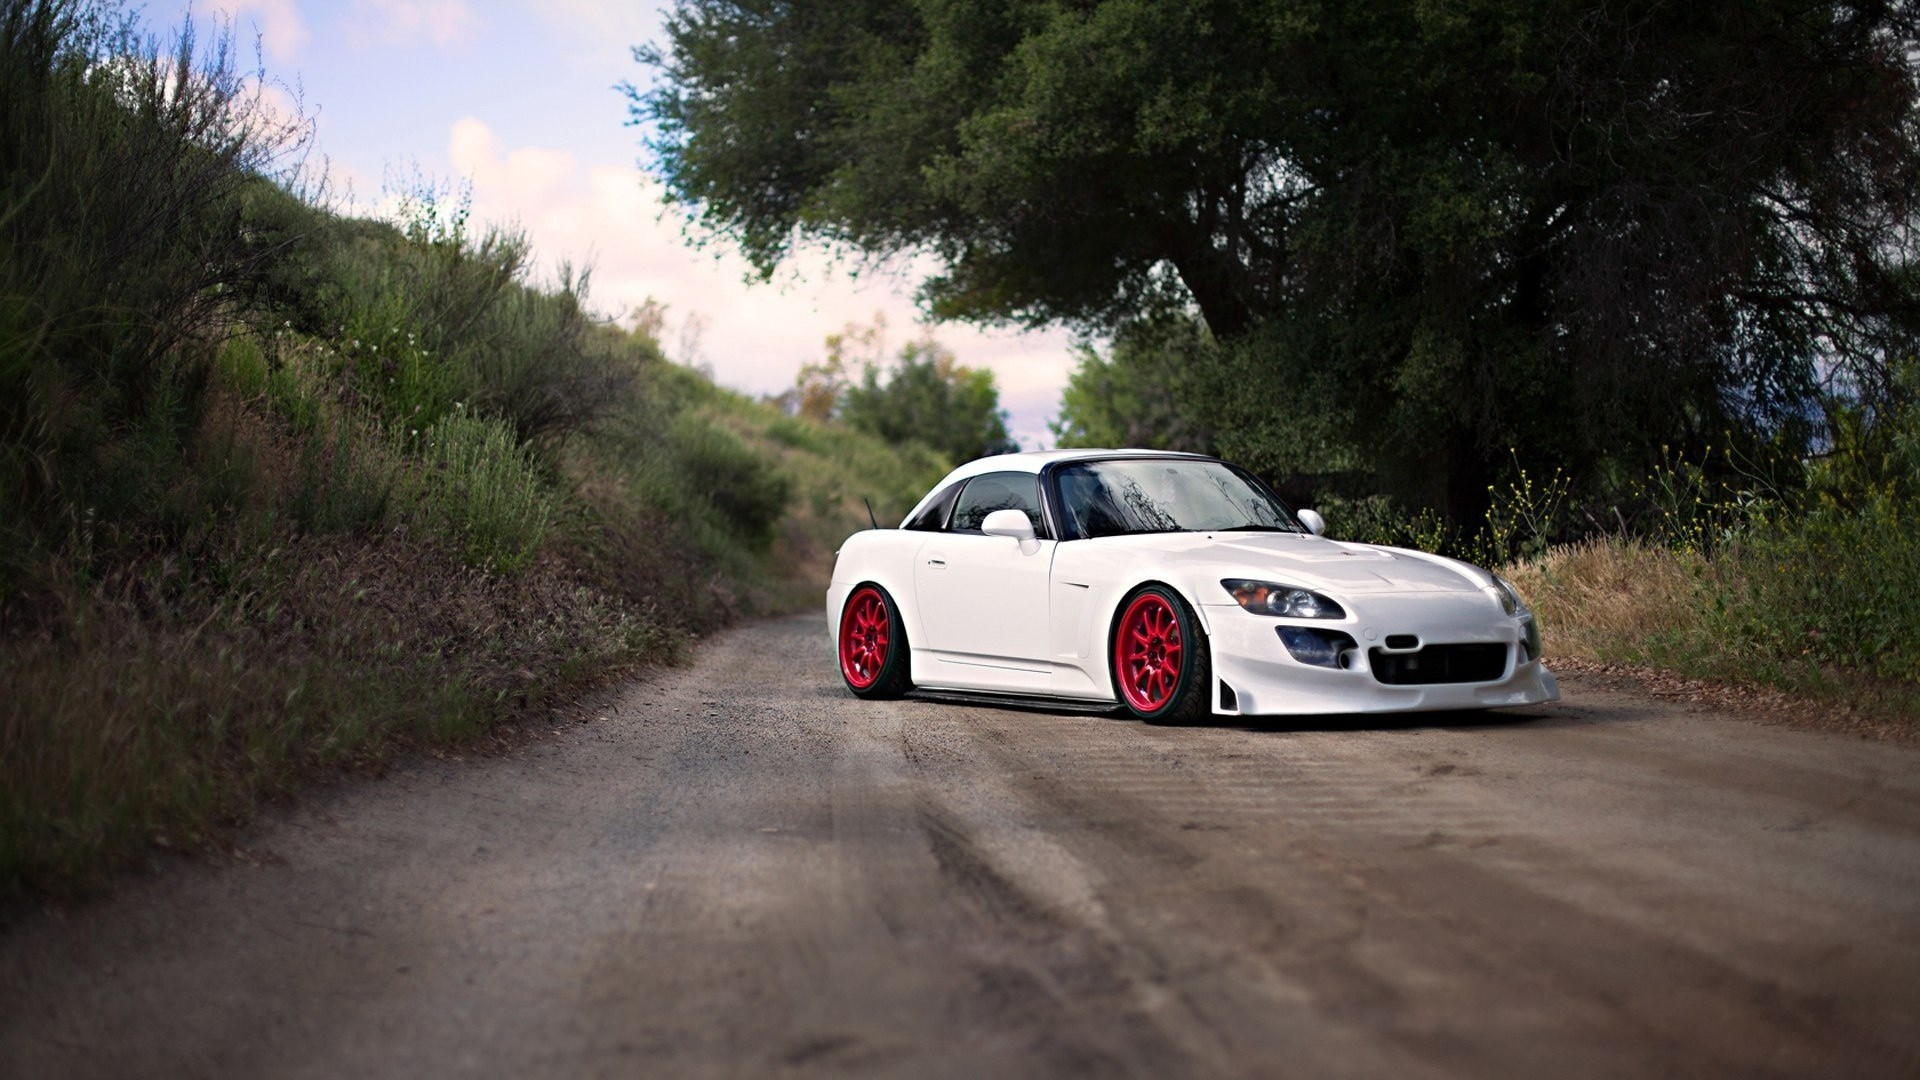 Honda S2000 Road Photo